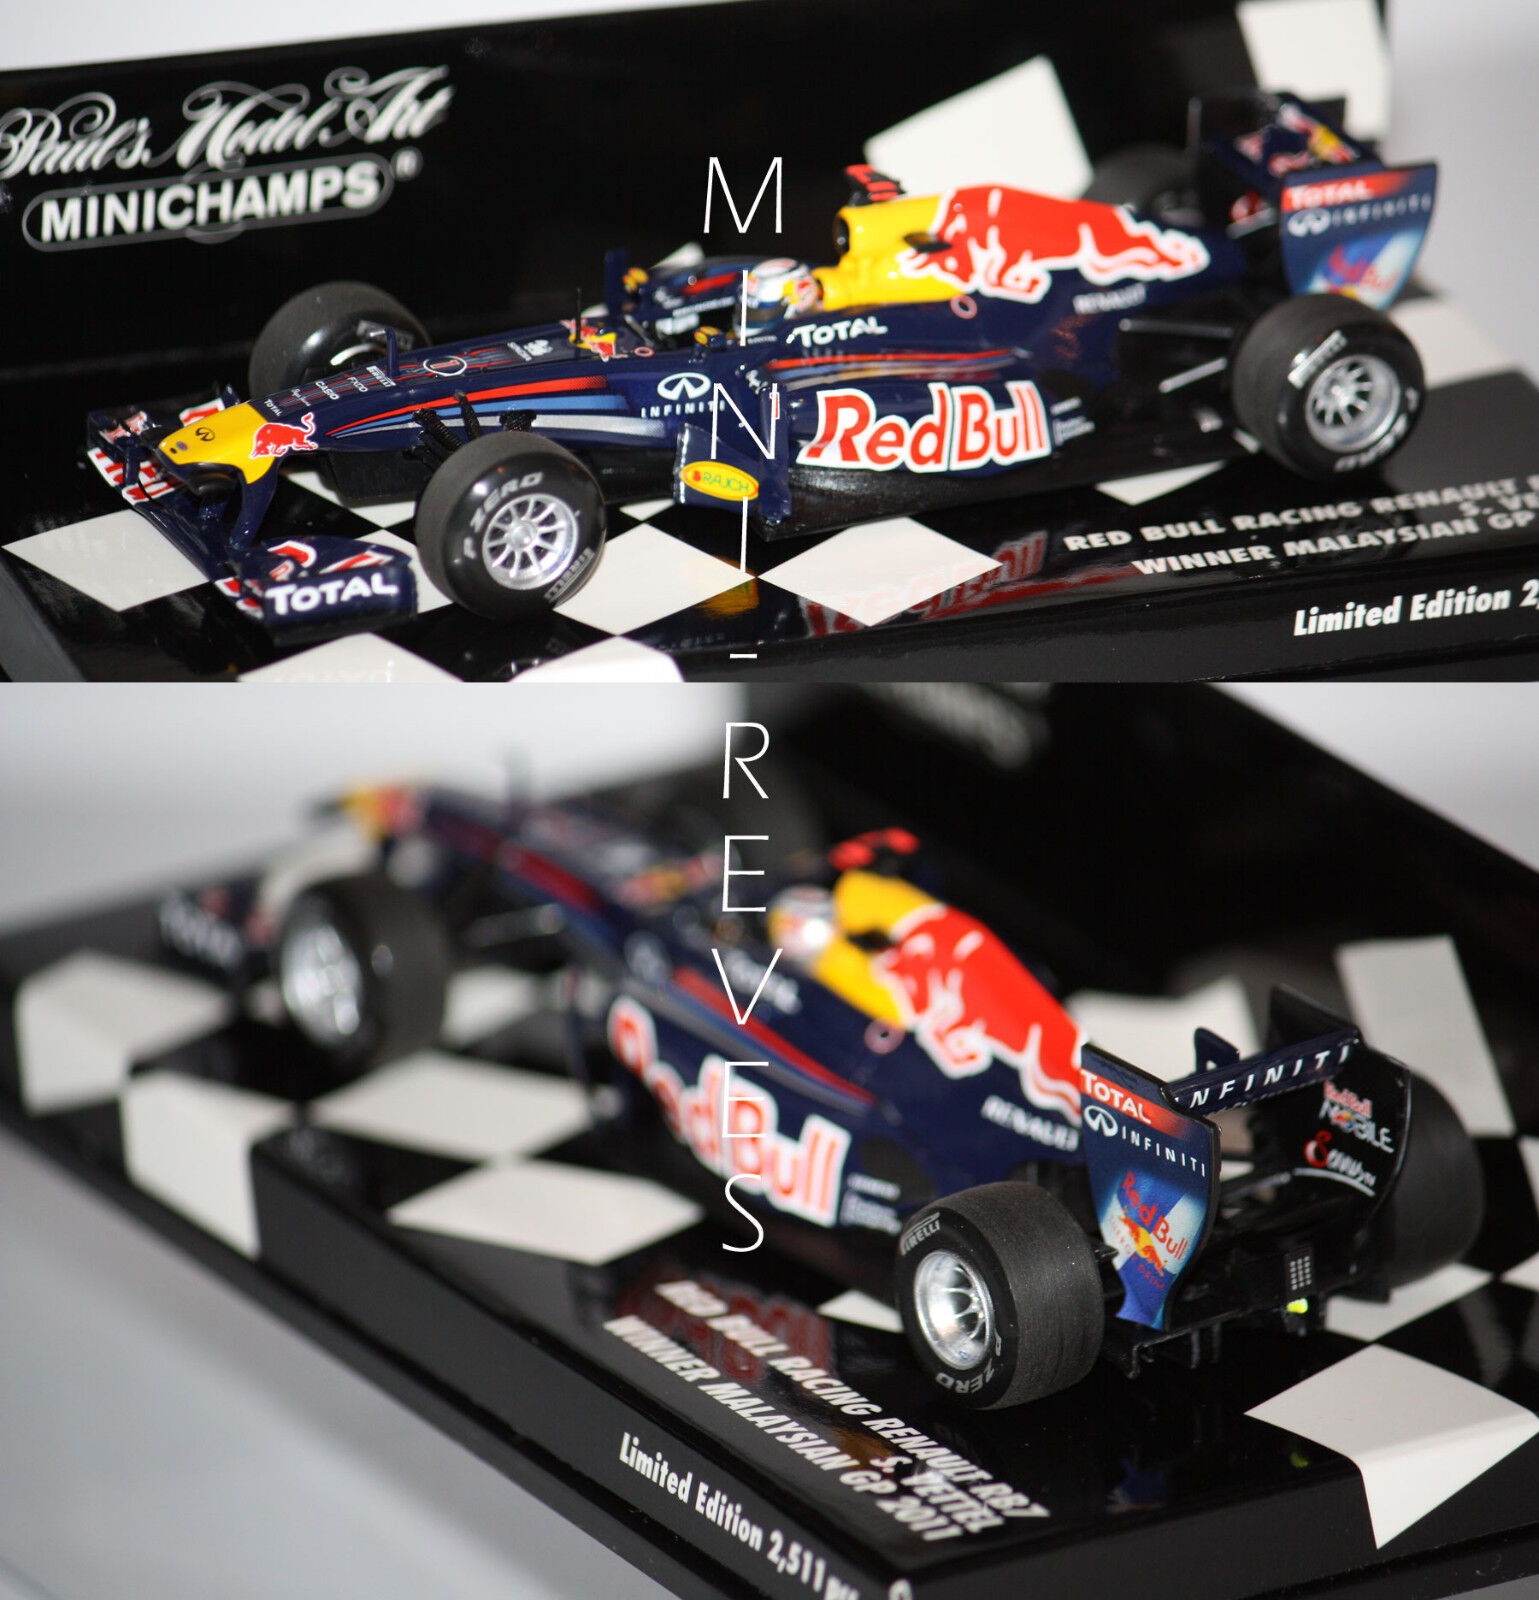 Minichamps F1 rouge Bull Racing RB7 S. Vettel WC 2011 1 43 410110101